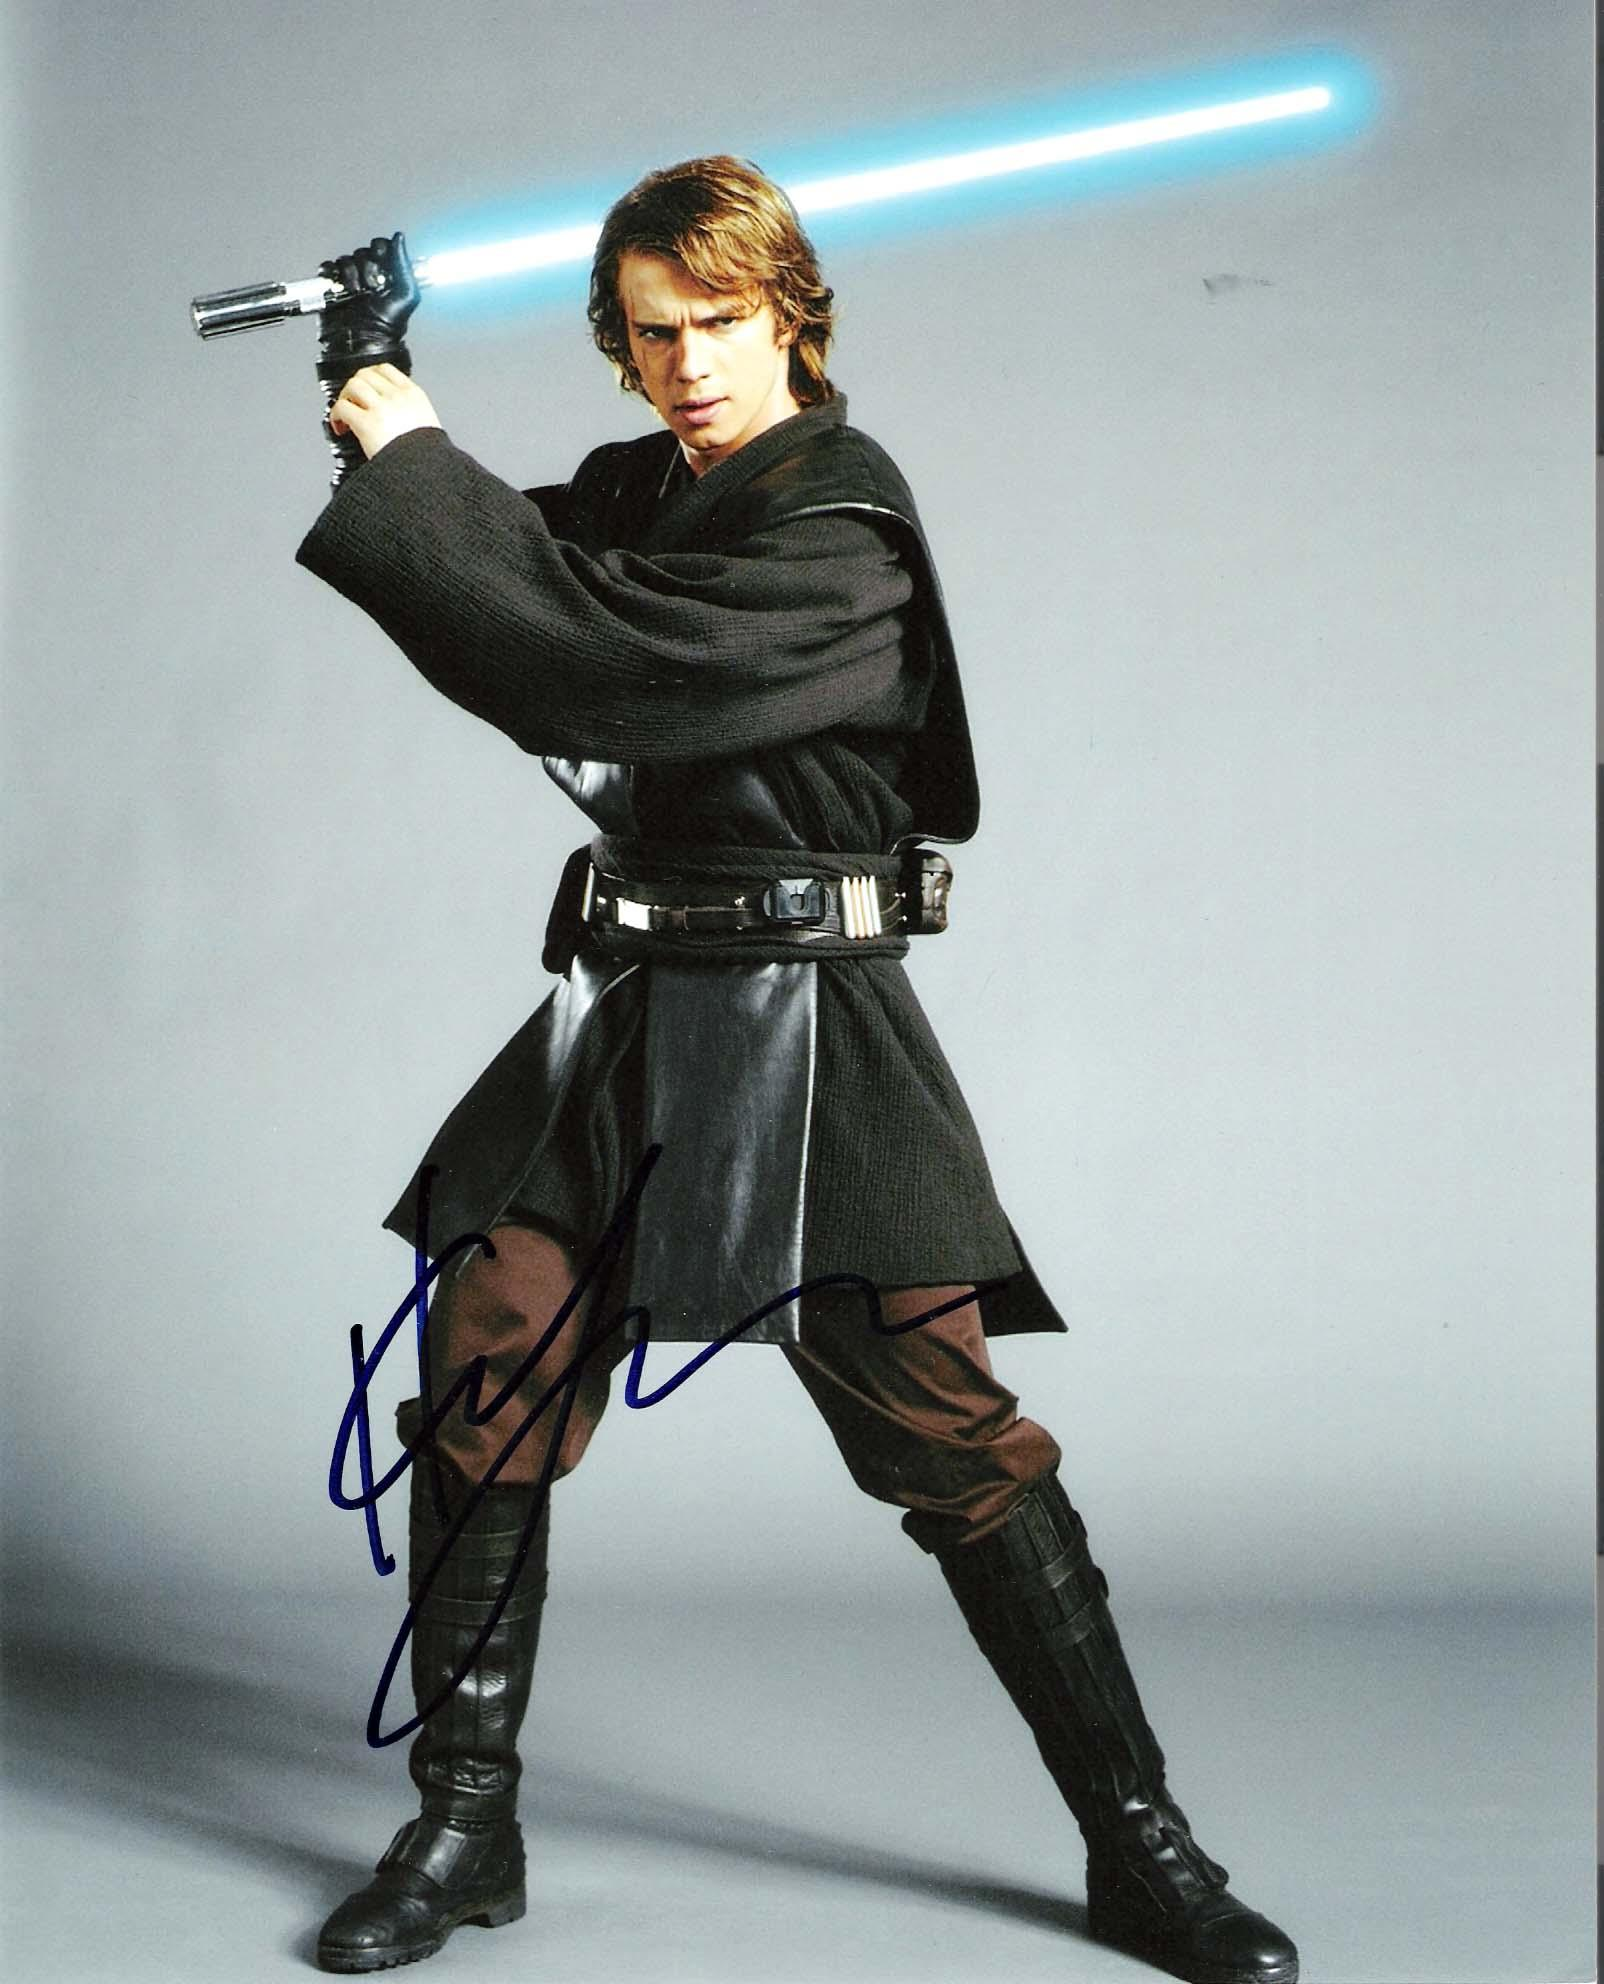 "HAYDEN CHRISTENSEN ""STAR WARS EPISODE 2 & 3"" as ANAKIN SKYWALKER/DARTH VADER Signed 8x10 Color Photo"